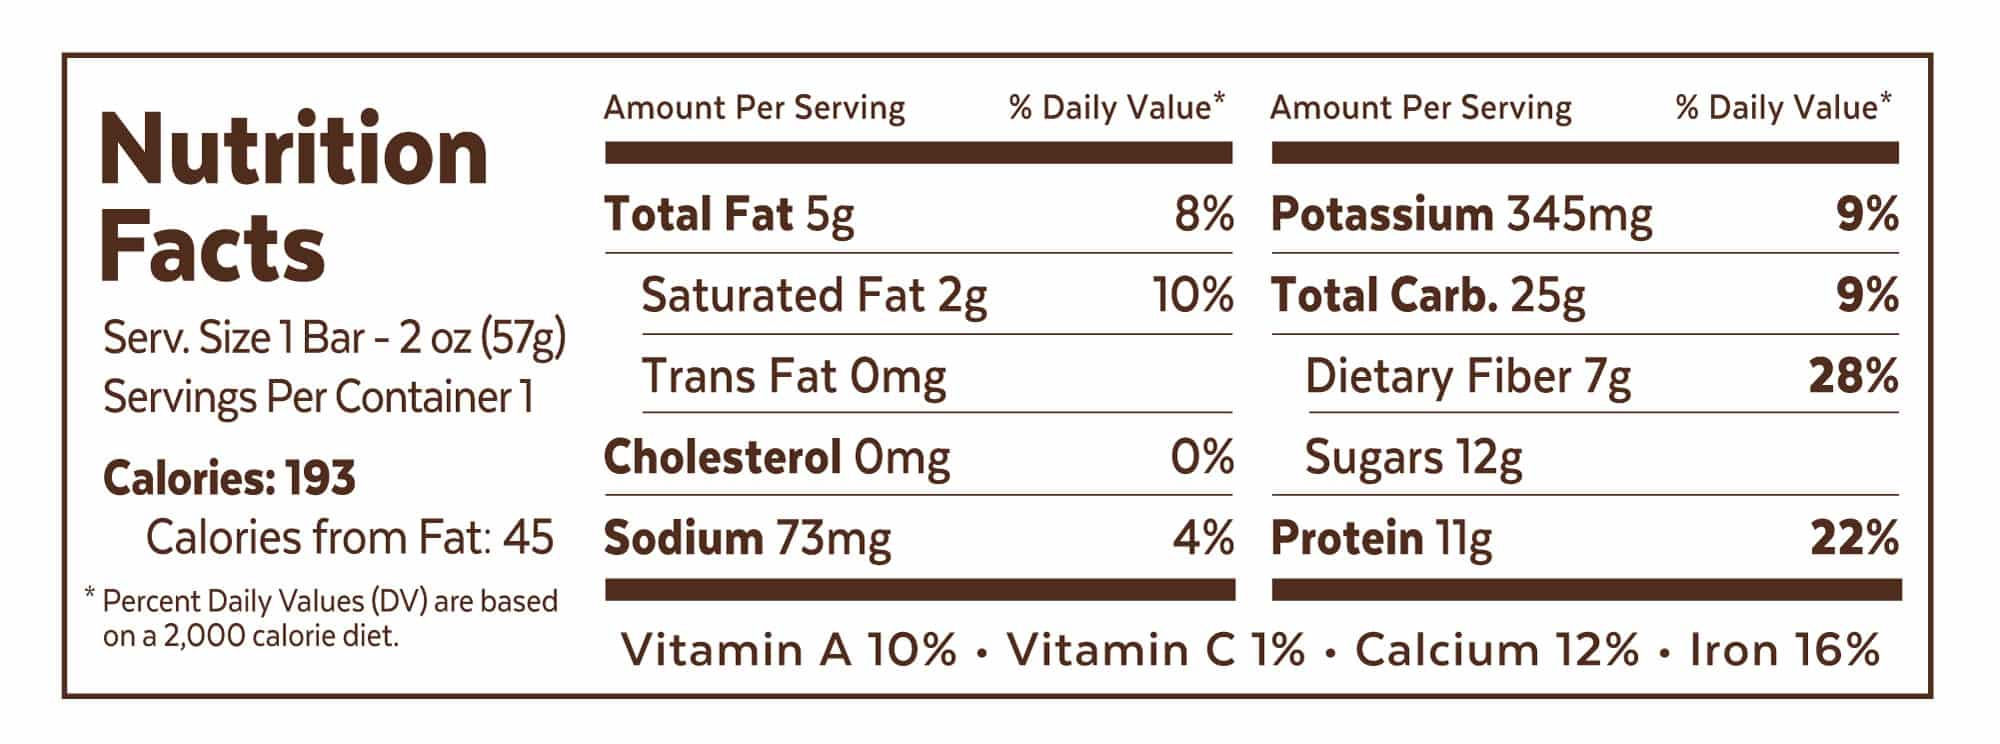 Grab The Gold Nutrition Facts CPB Wrapper 01.18 2000